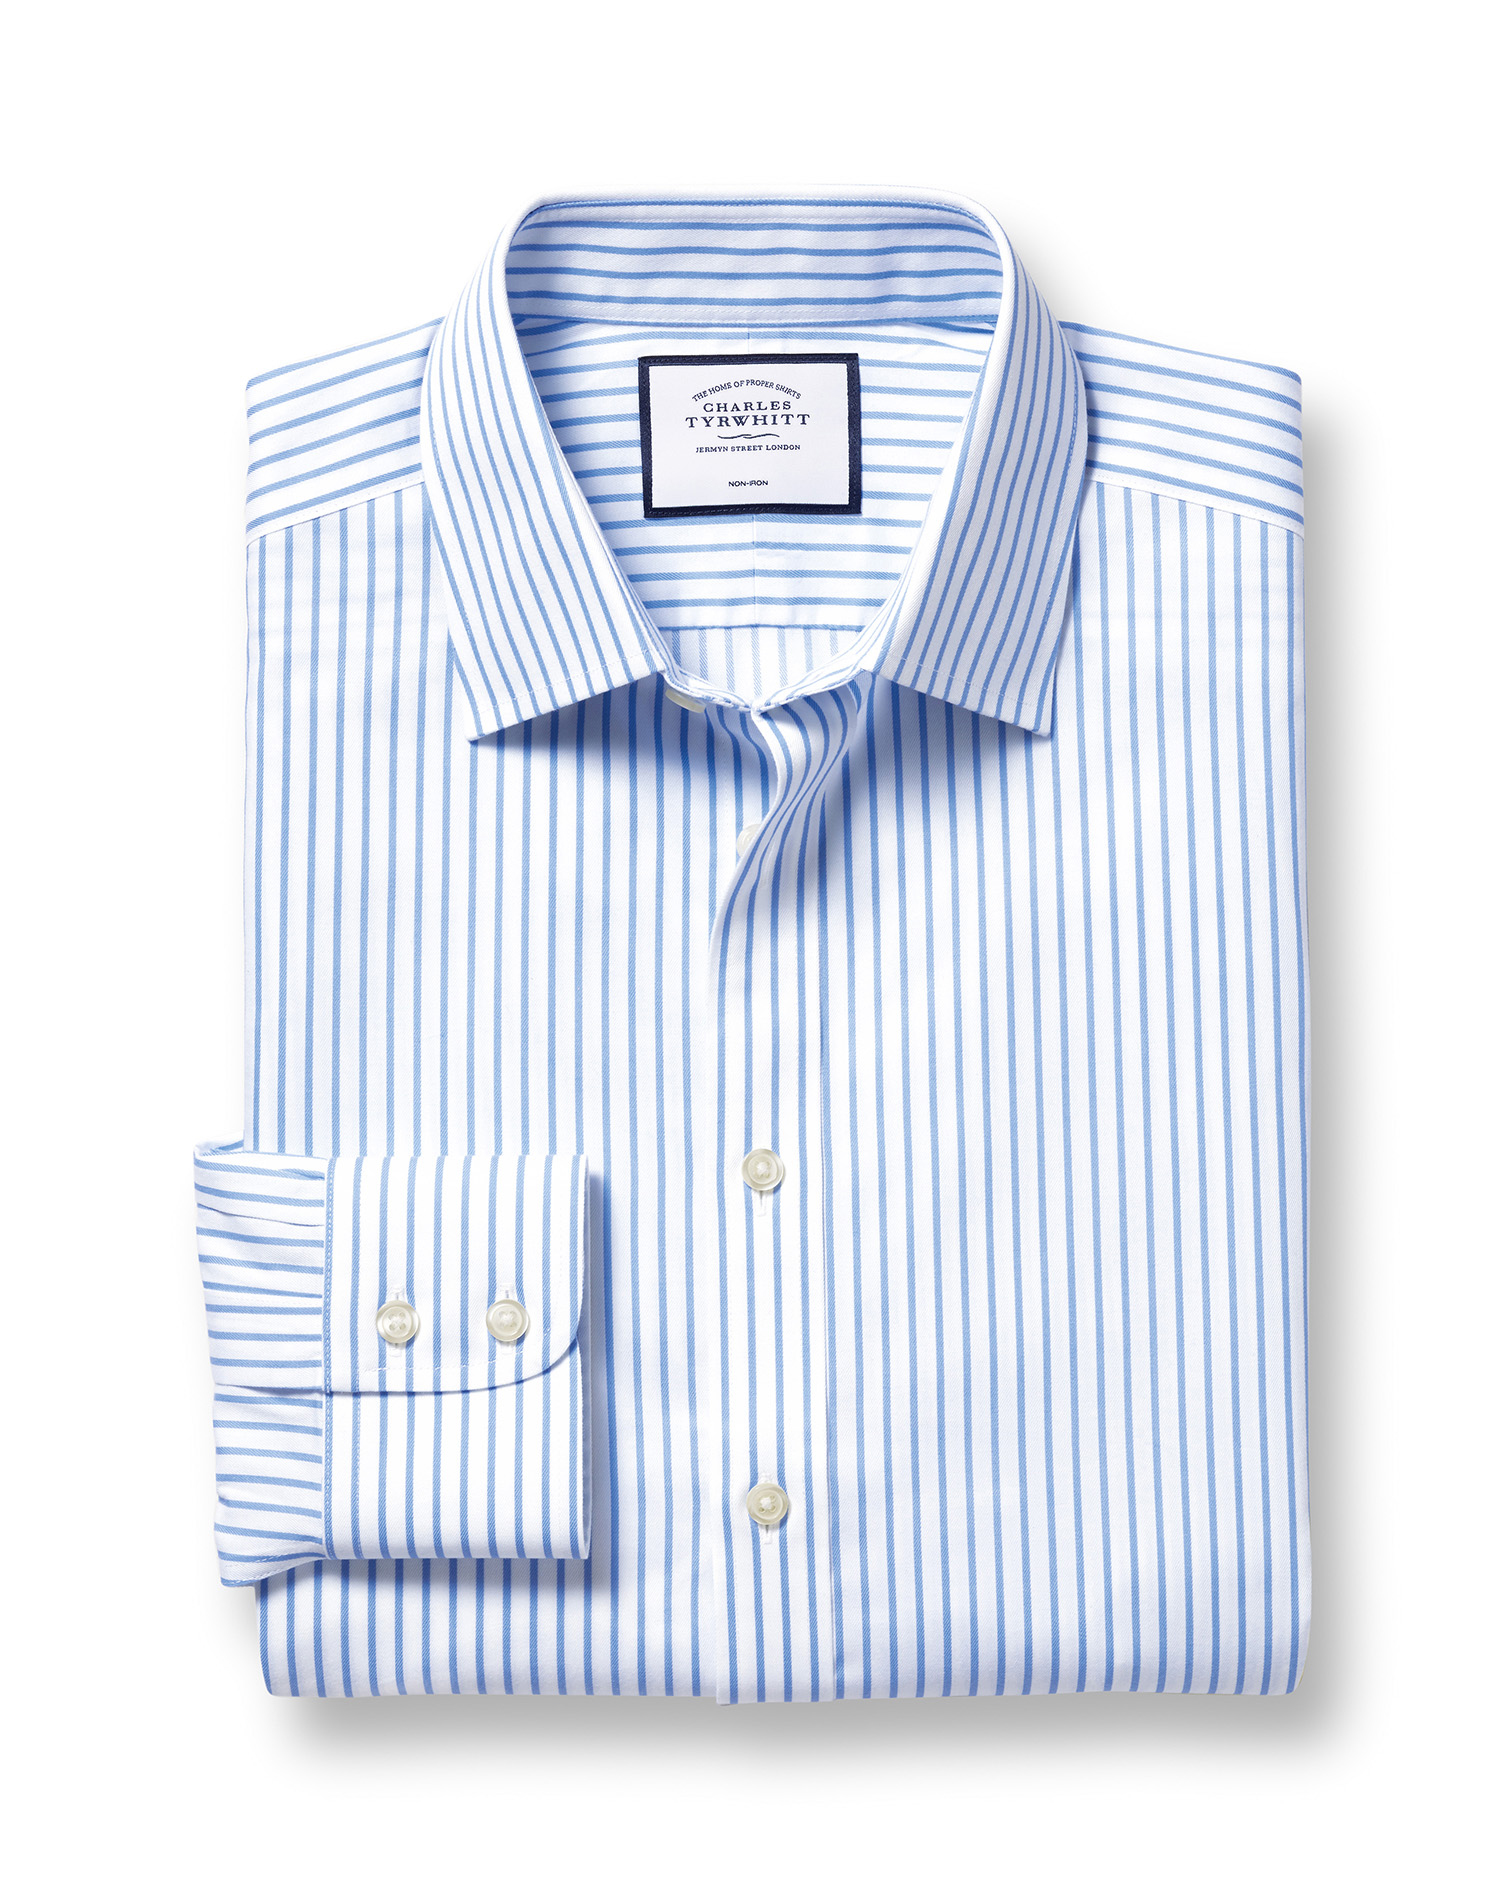 Extra Slim Fit Non-Iron Sky Blue Stripe Twill Cotton Formal Shirt Double Cuff Size 17/37 by Charles